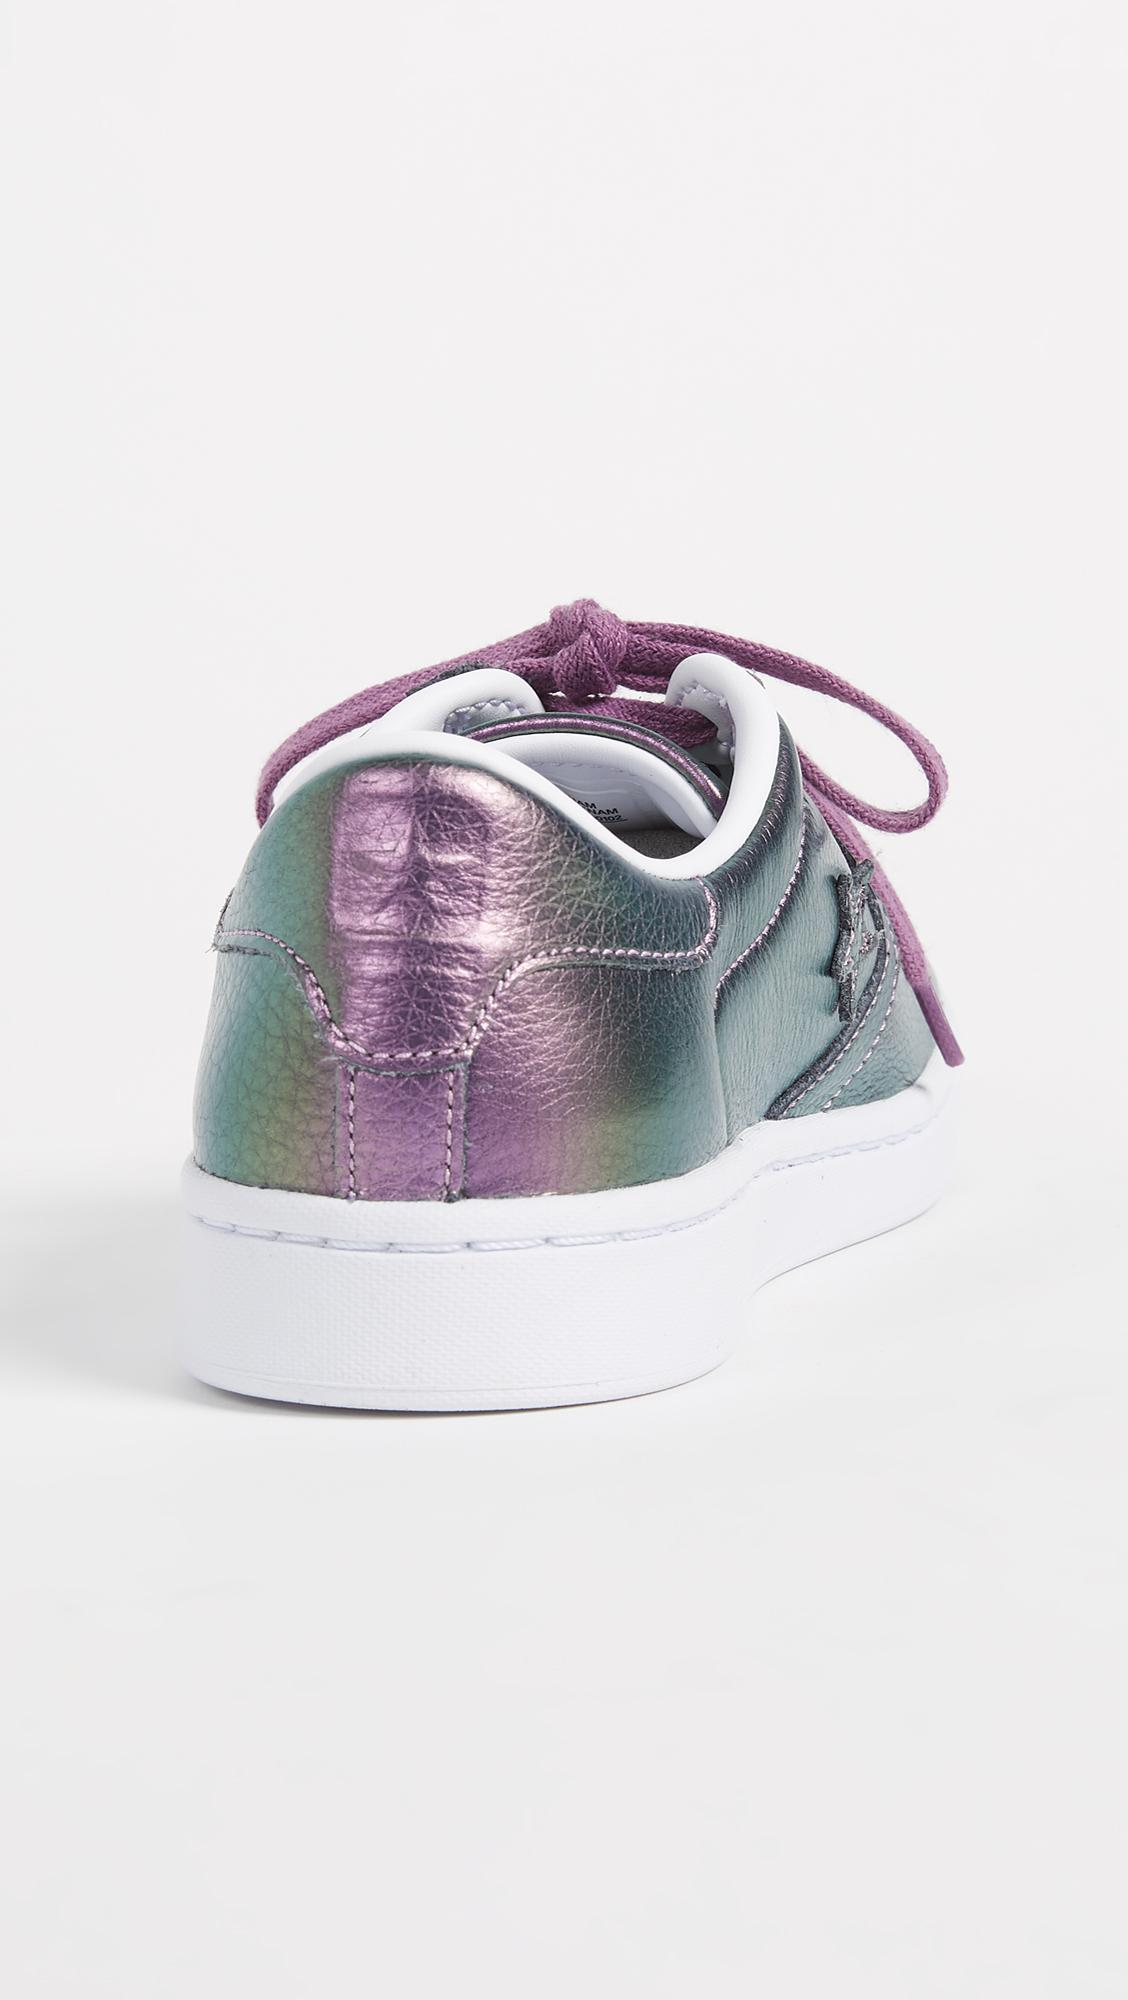 5c2129457aa Lyst - Converse Pro Leather Lp Iridescent Ox Sneakers in White